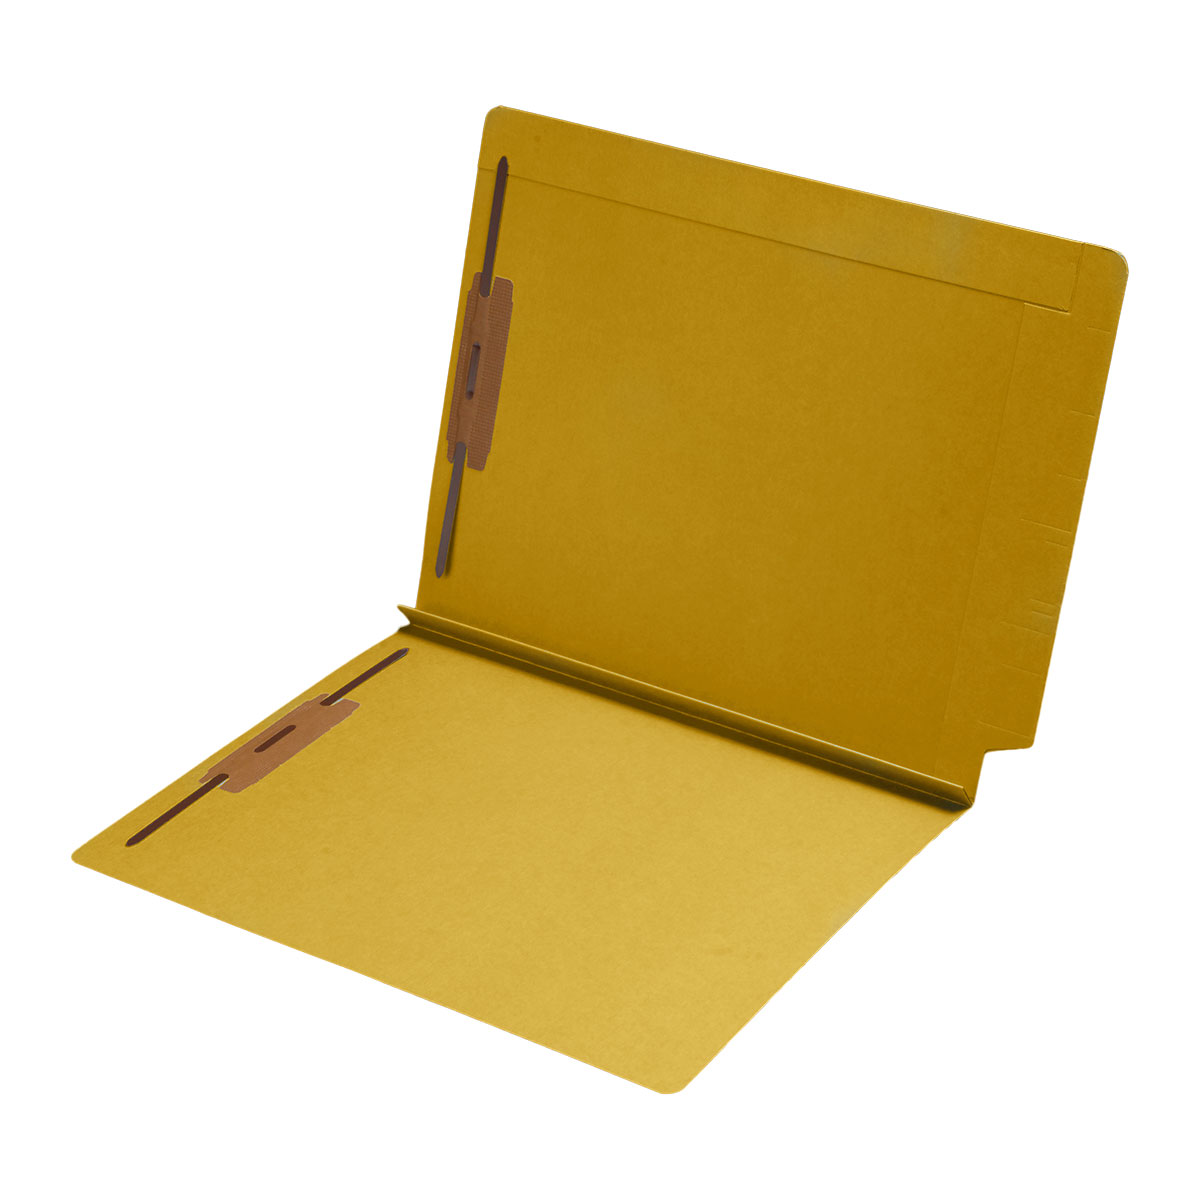 S-9078-YLW - 14 pt Color Folders, Full Cut 2-Ply End Tab, Letter Size, 1-1/2